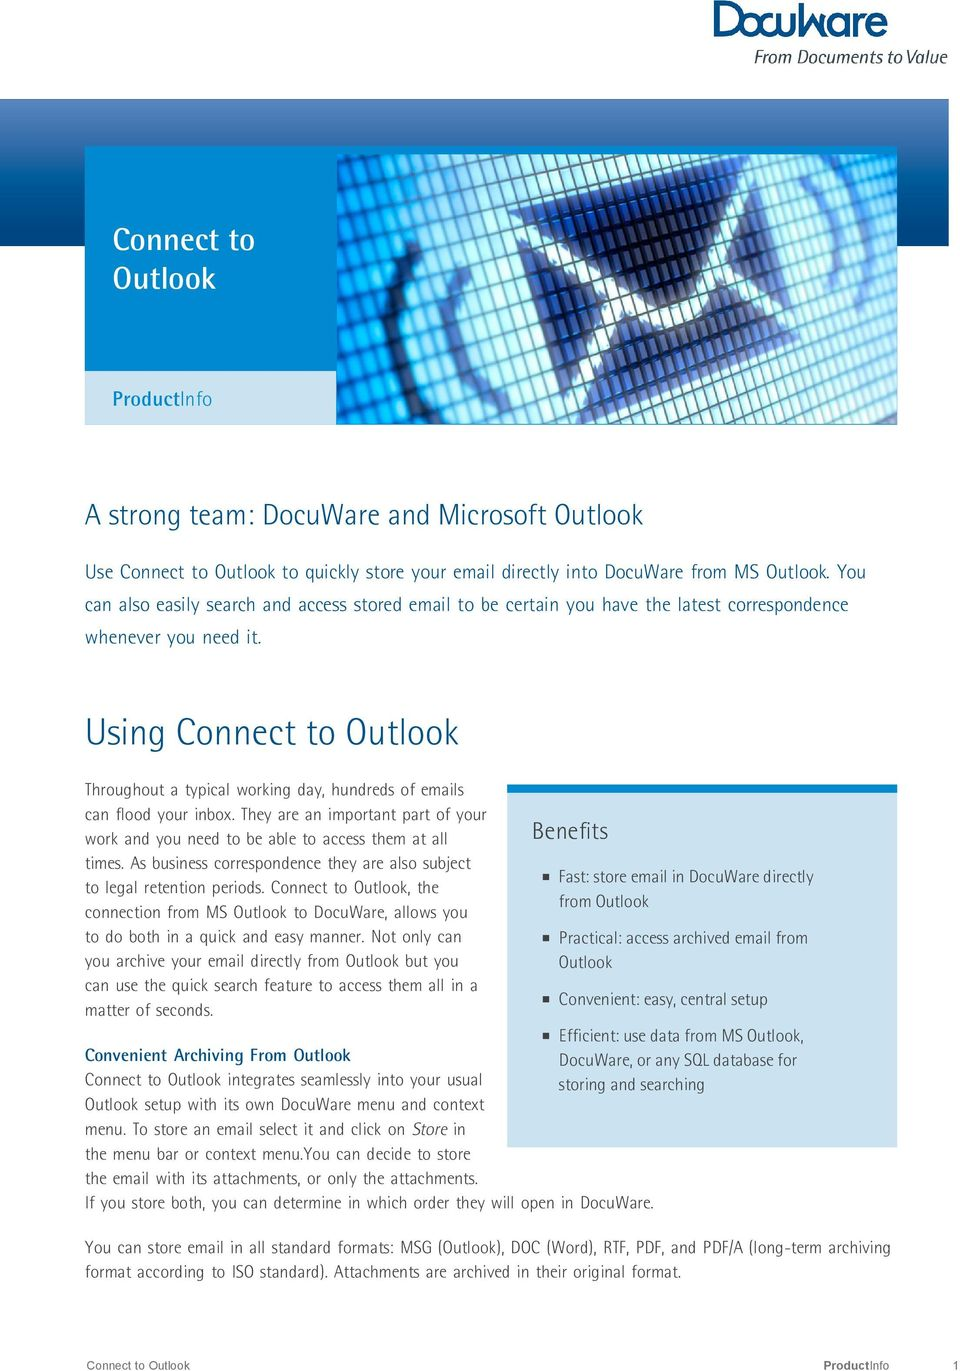 Using Connect to Outlook Throughout a typical working day, hundreds of emails can flood your inbox. They are an important part of your work and you need to be able to access them at all times.